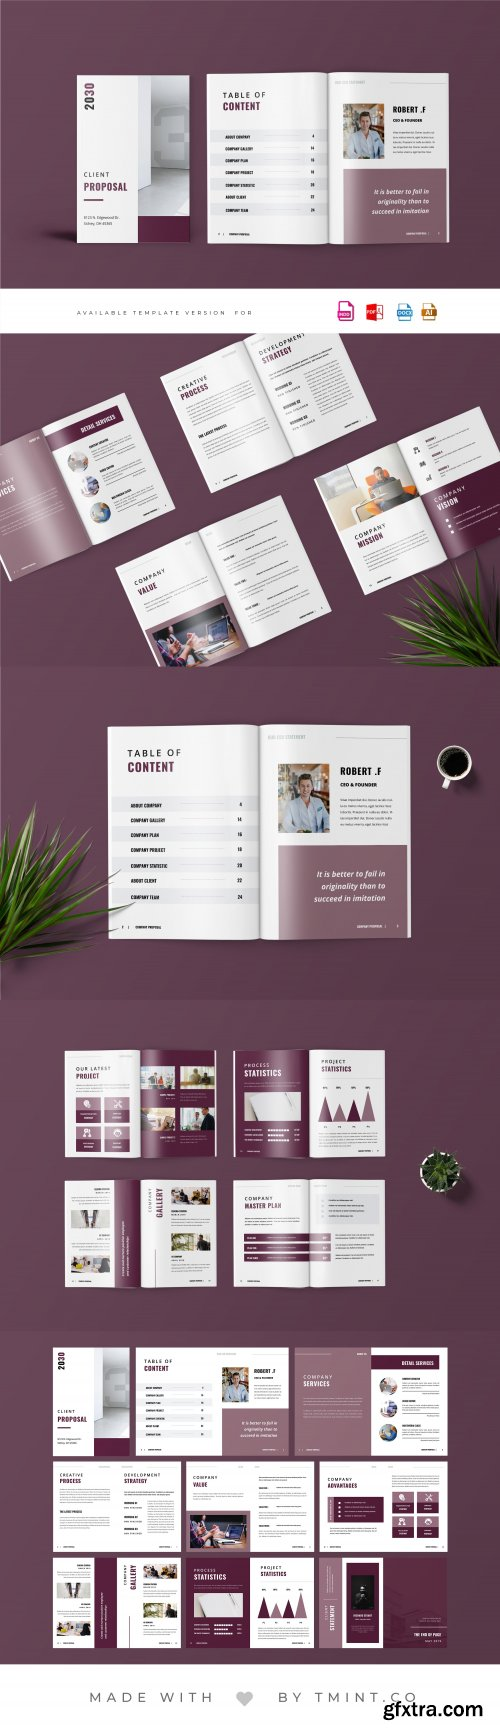 CreativeMarket - Project Proposal Template 4064456